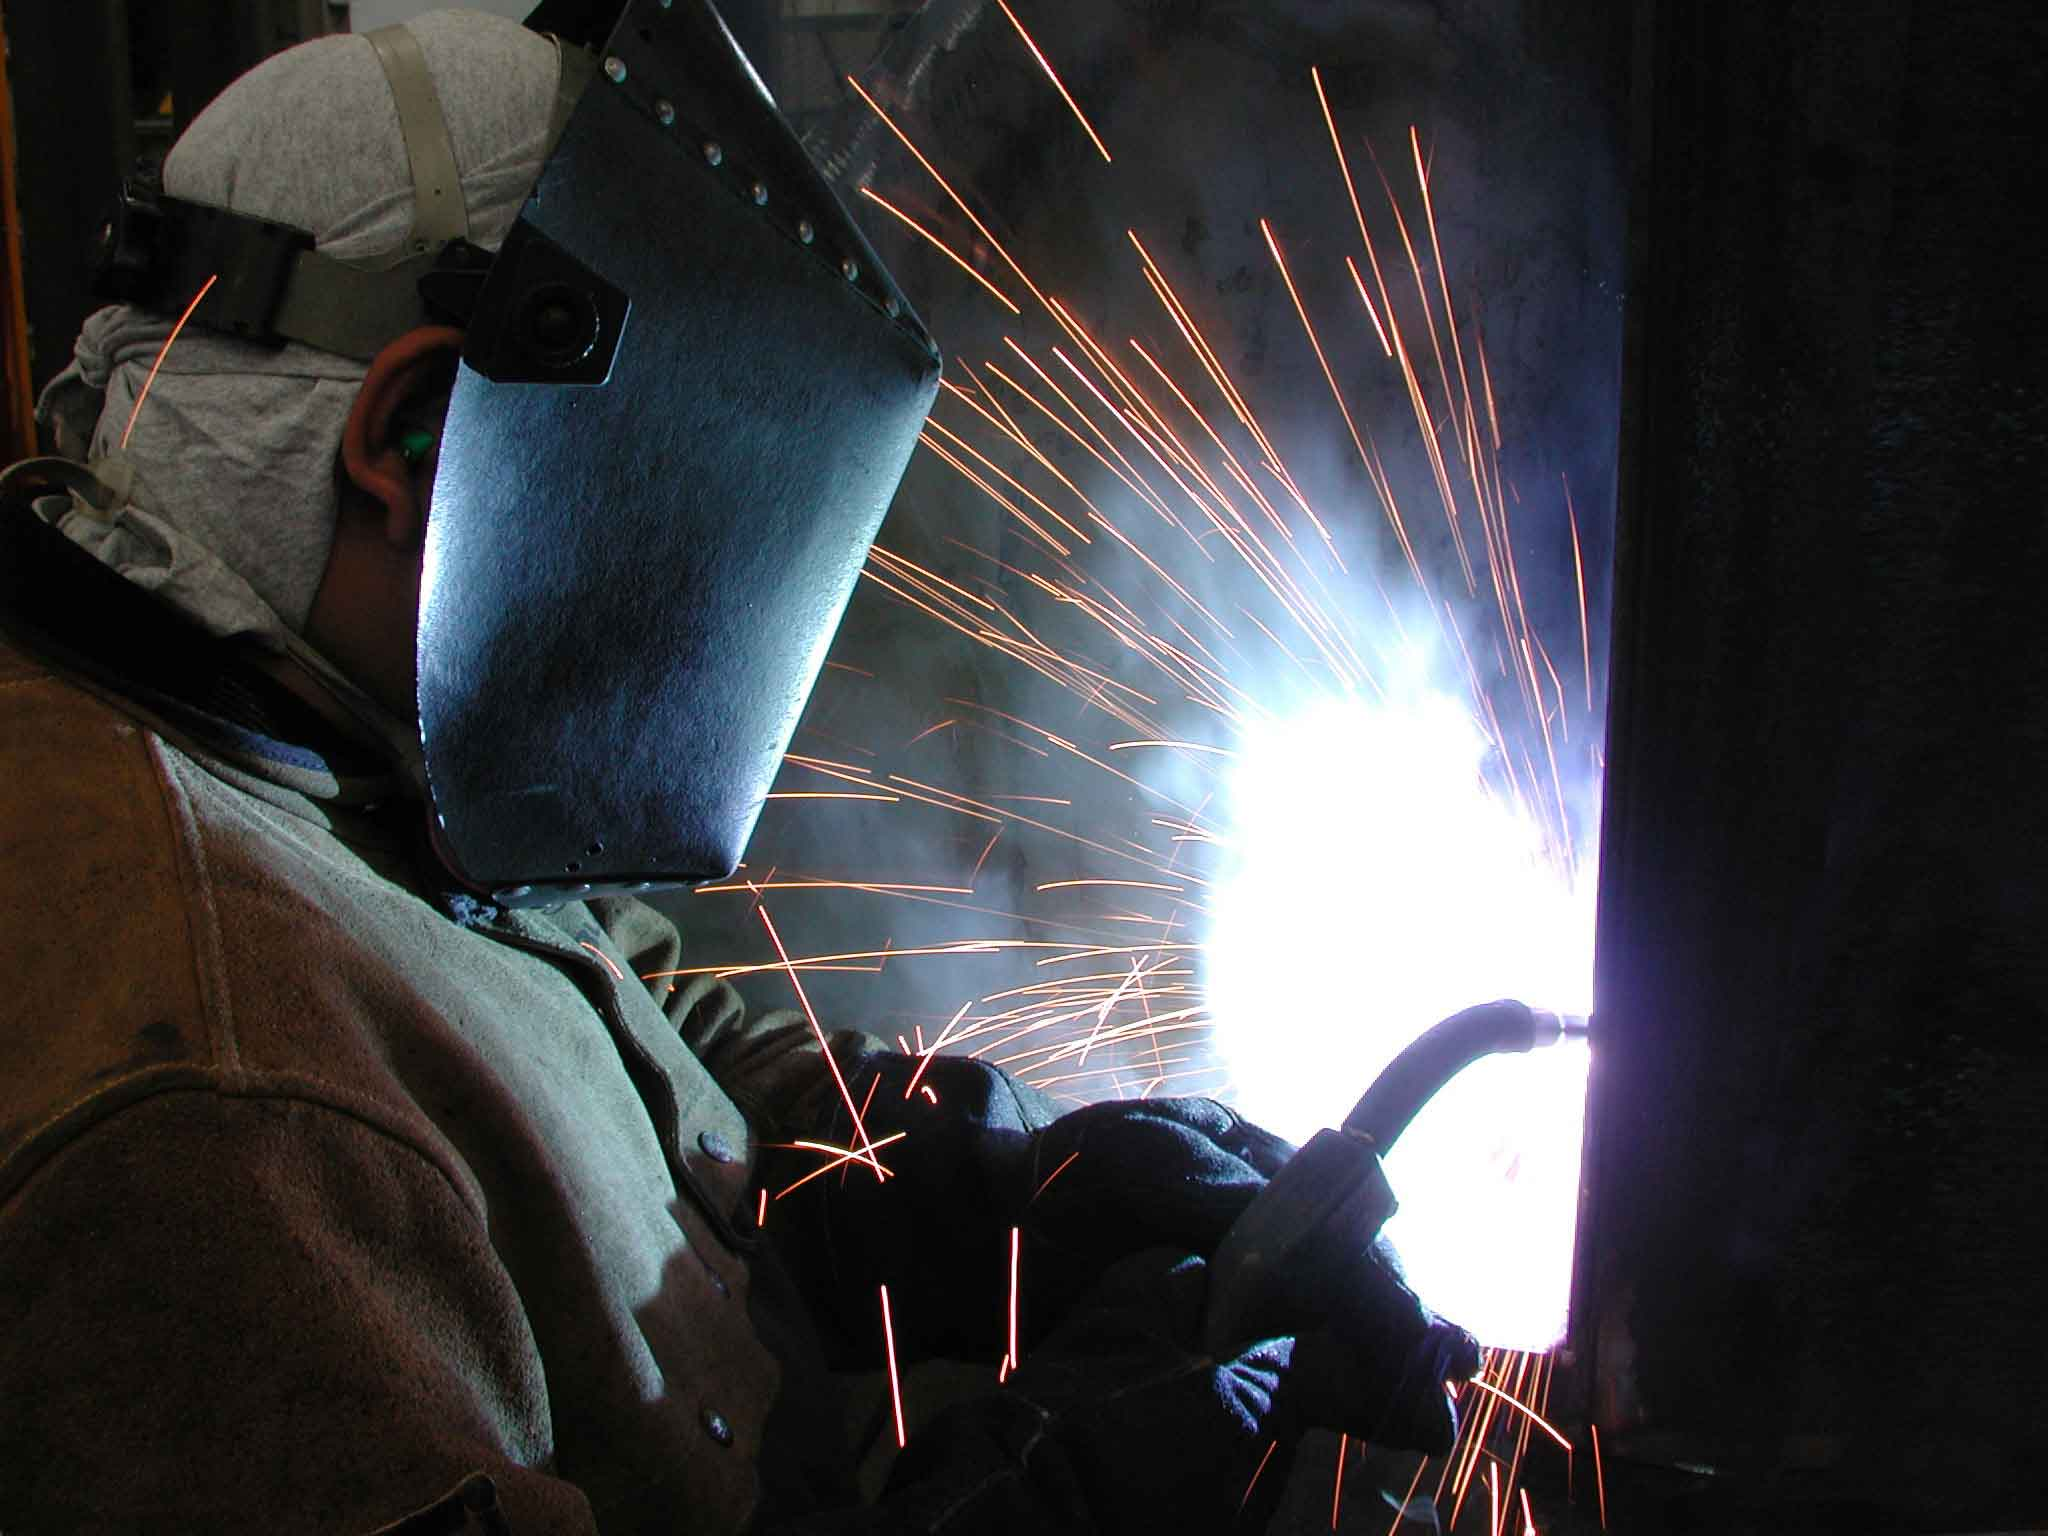 Welder in welding shop wearing a mask and welding on a piece of metal.